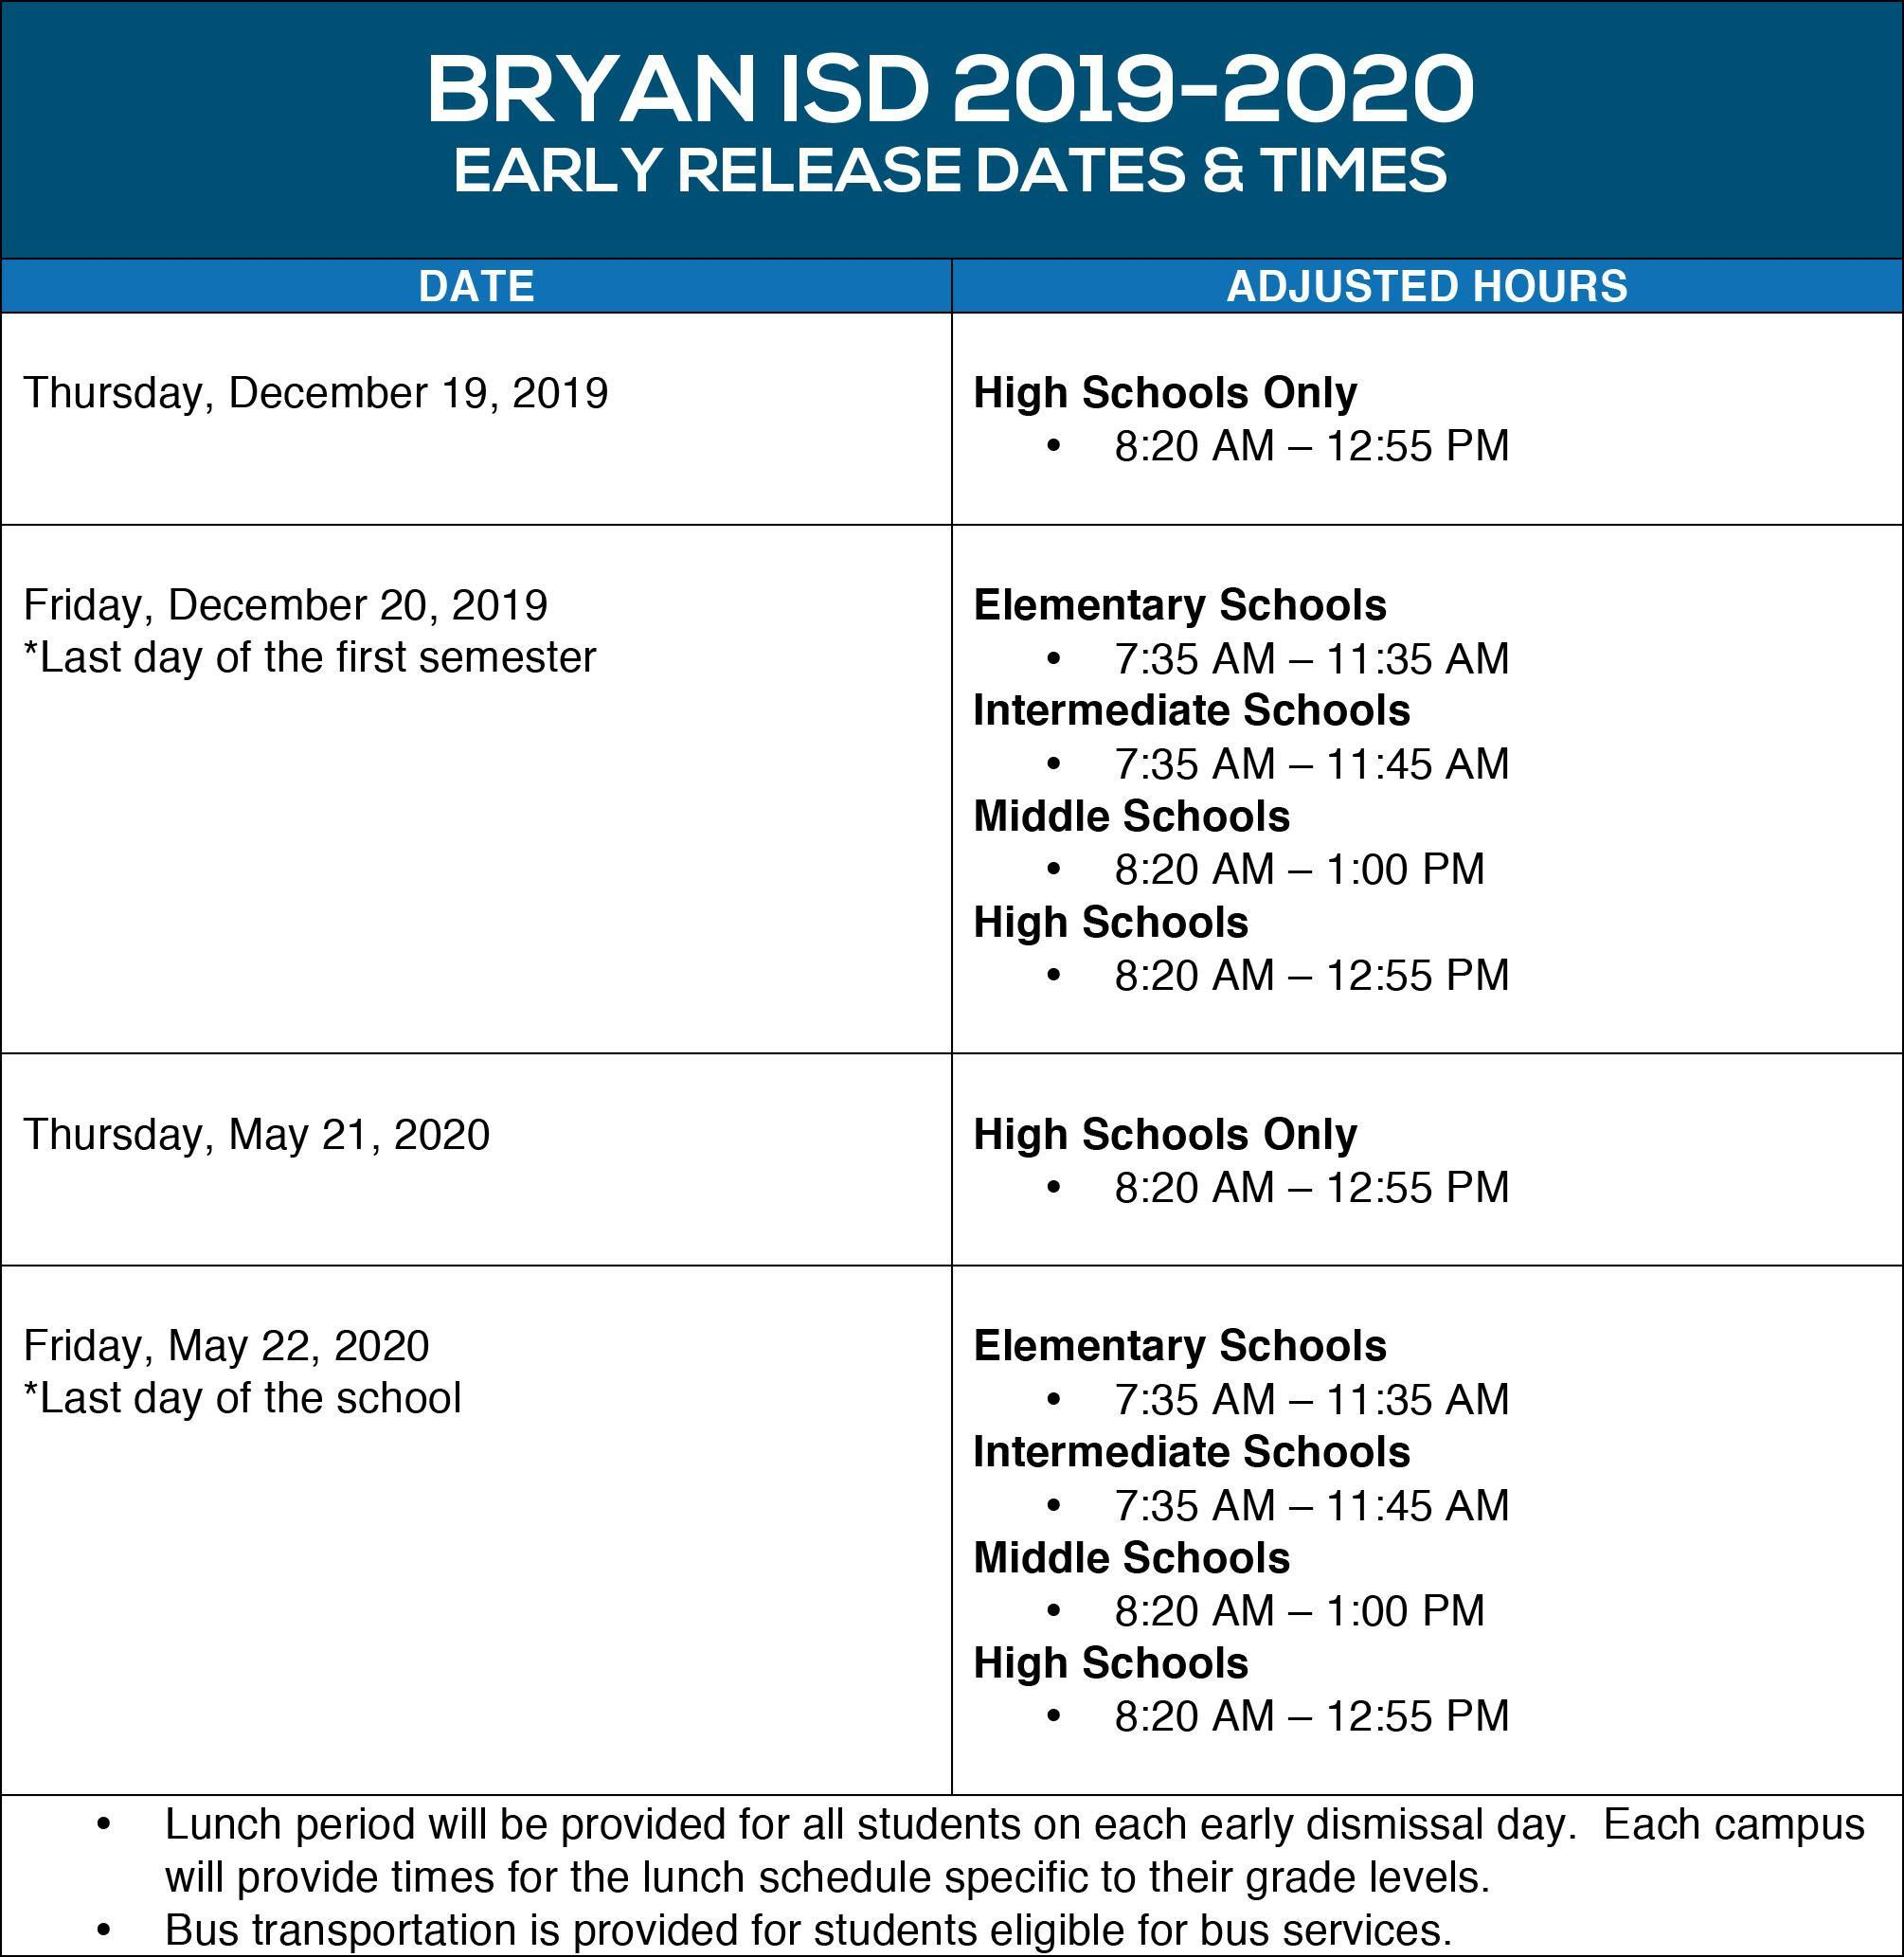 2019-2020 Early Release Schedule